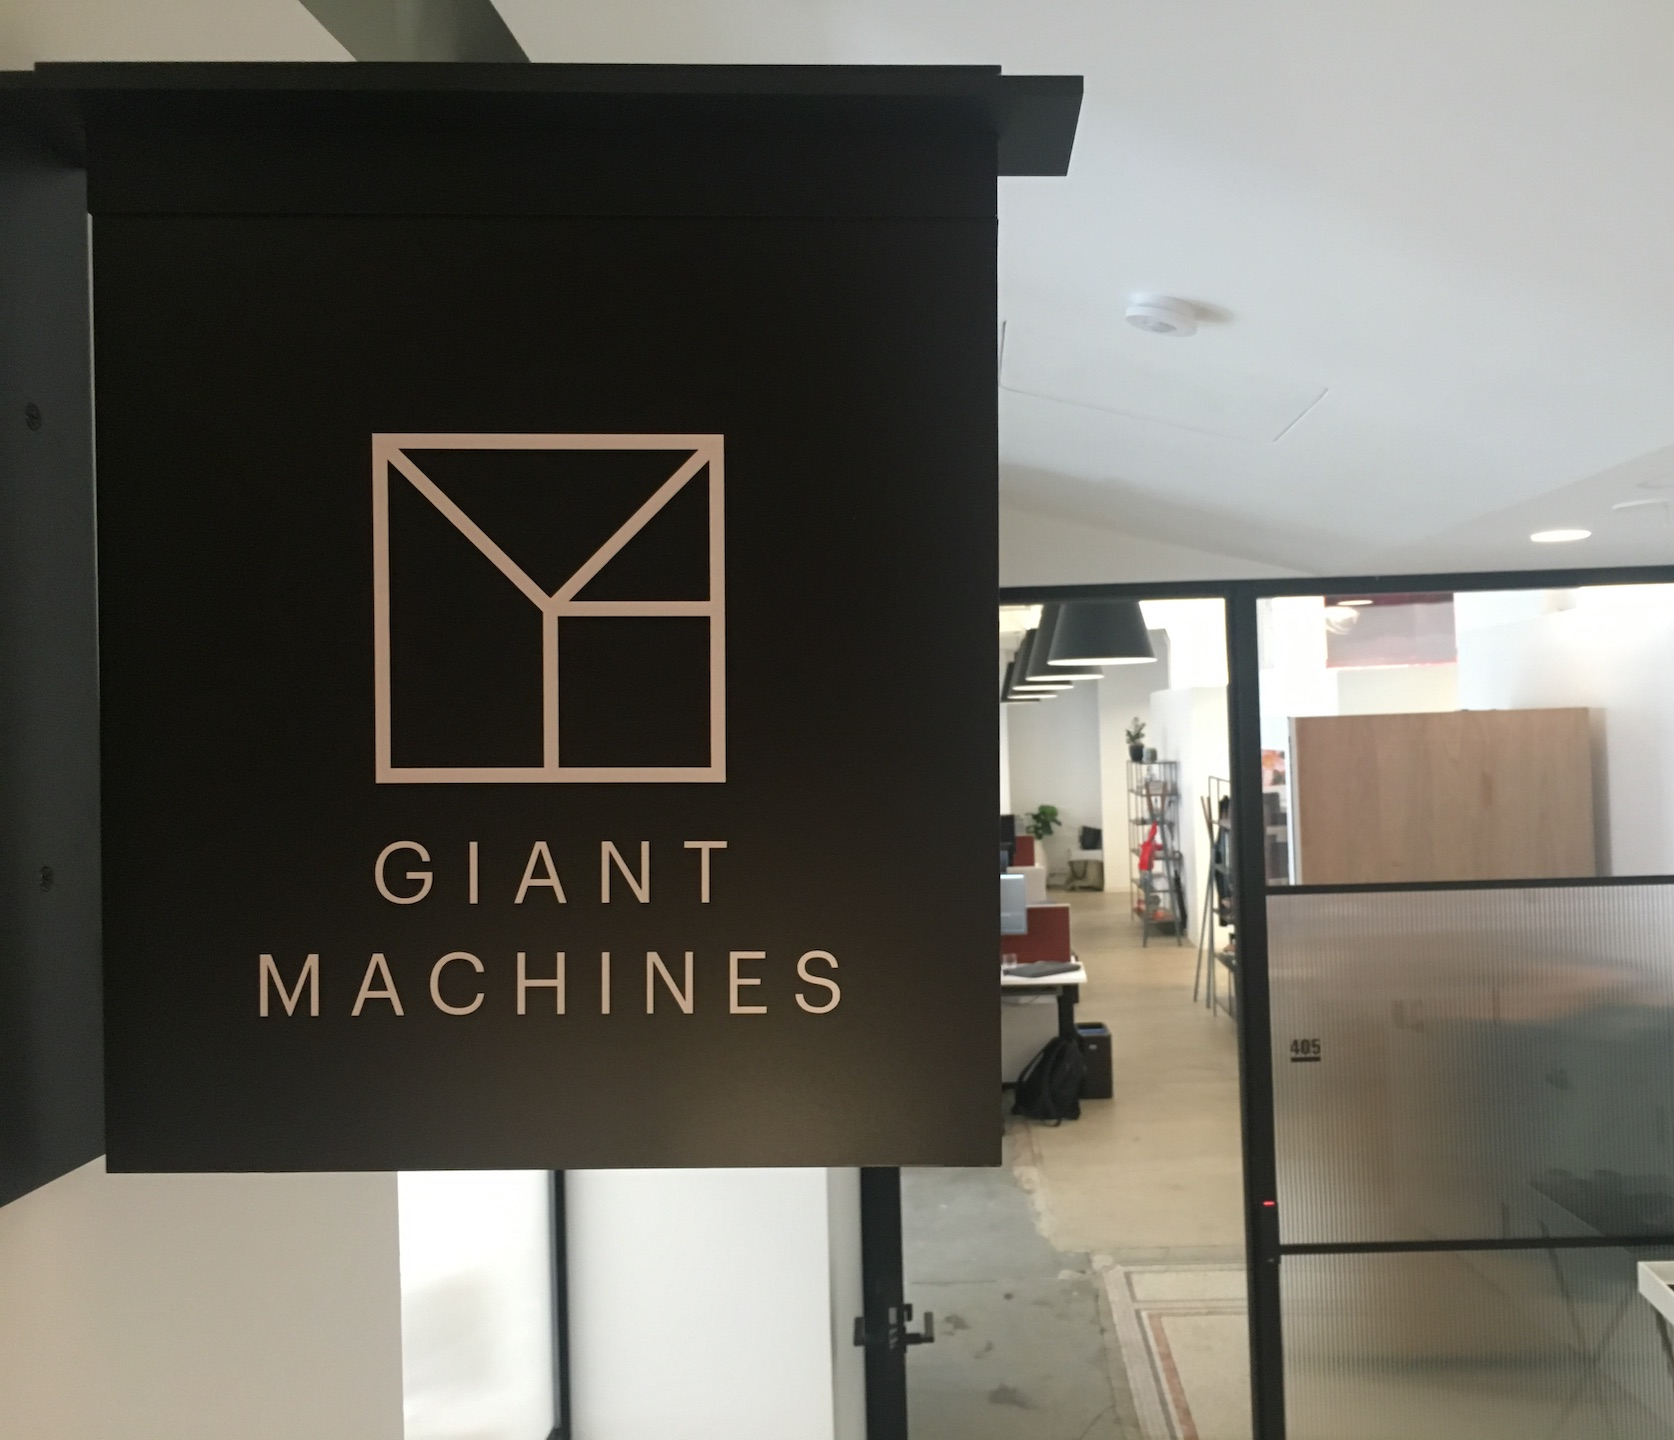 Giant Machines' front door